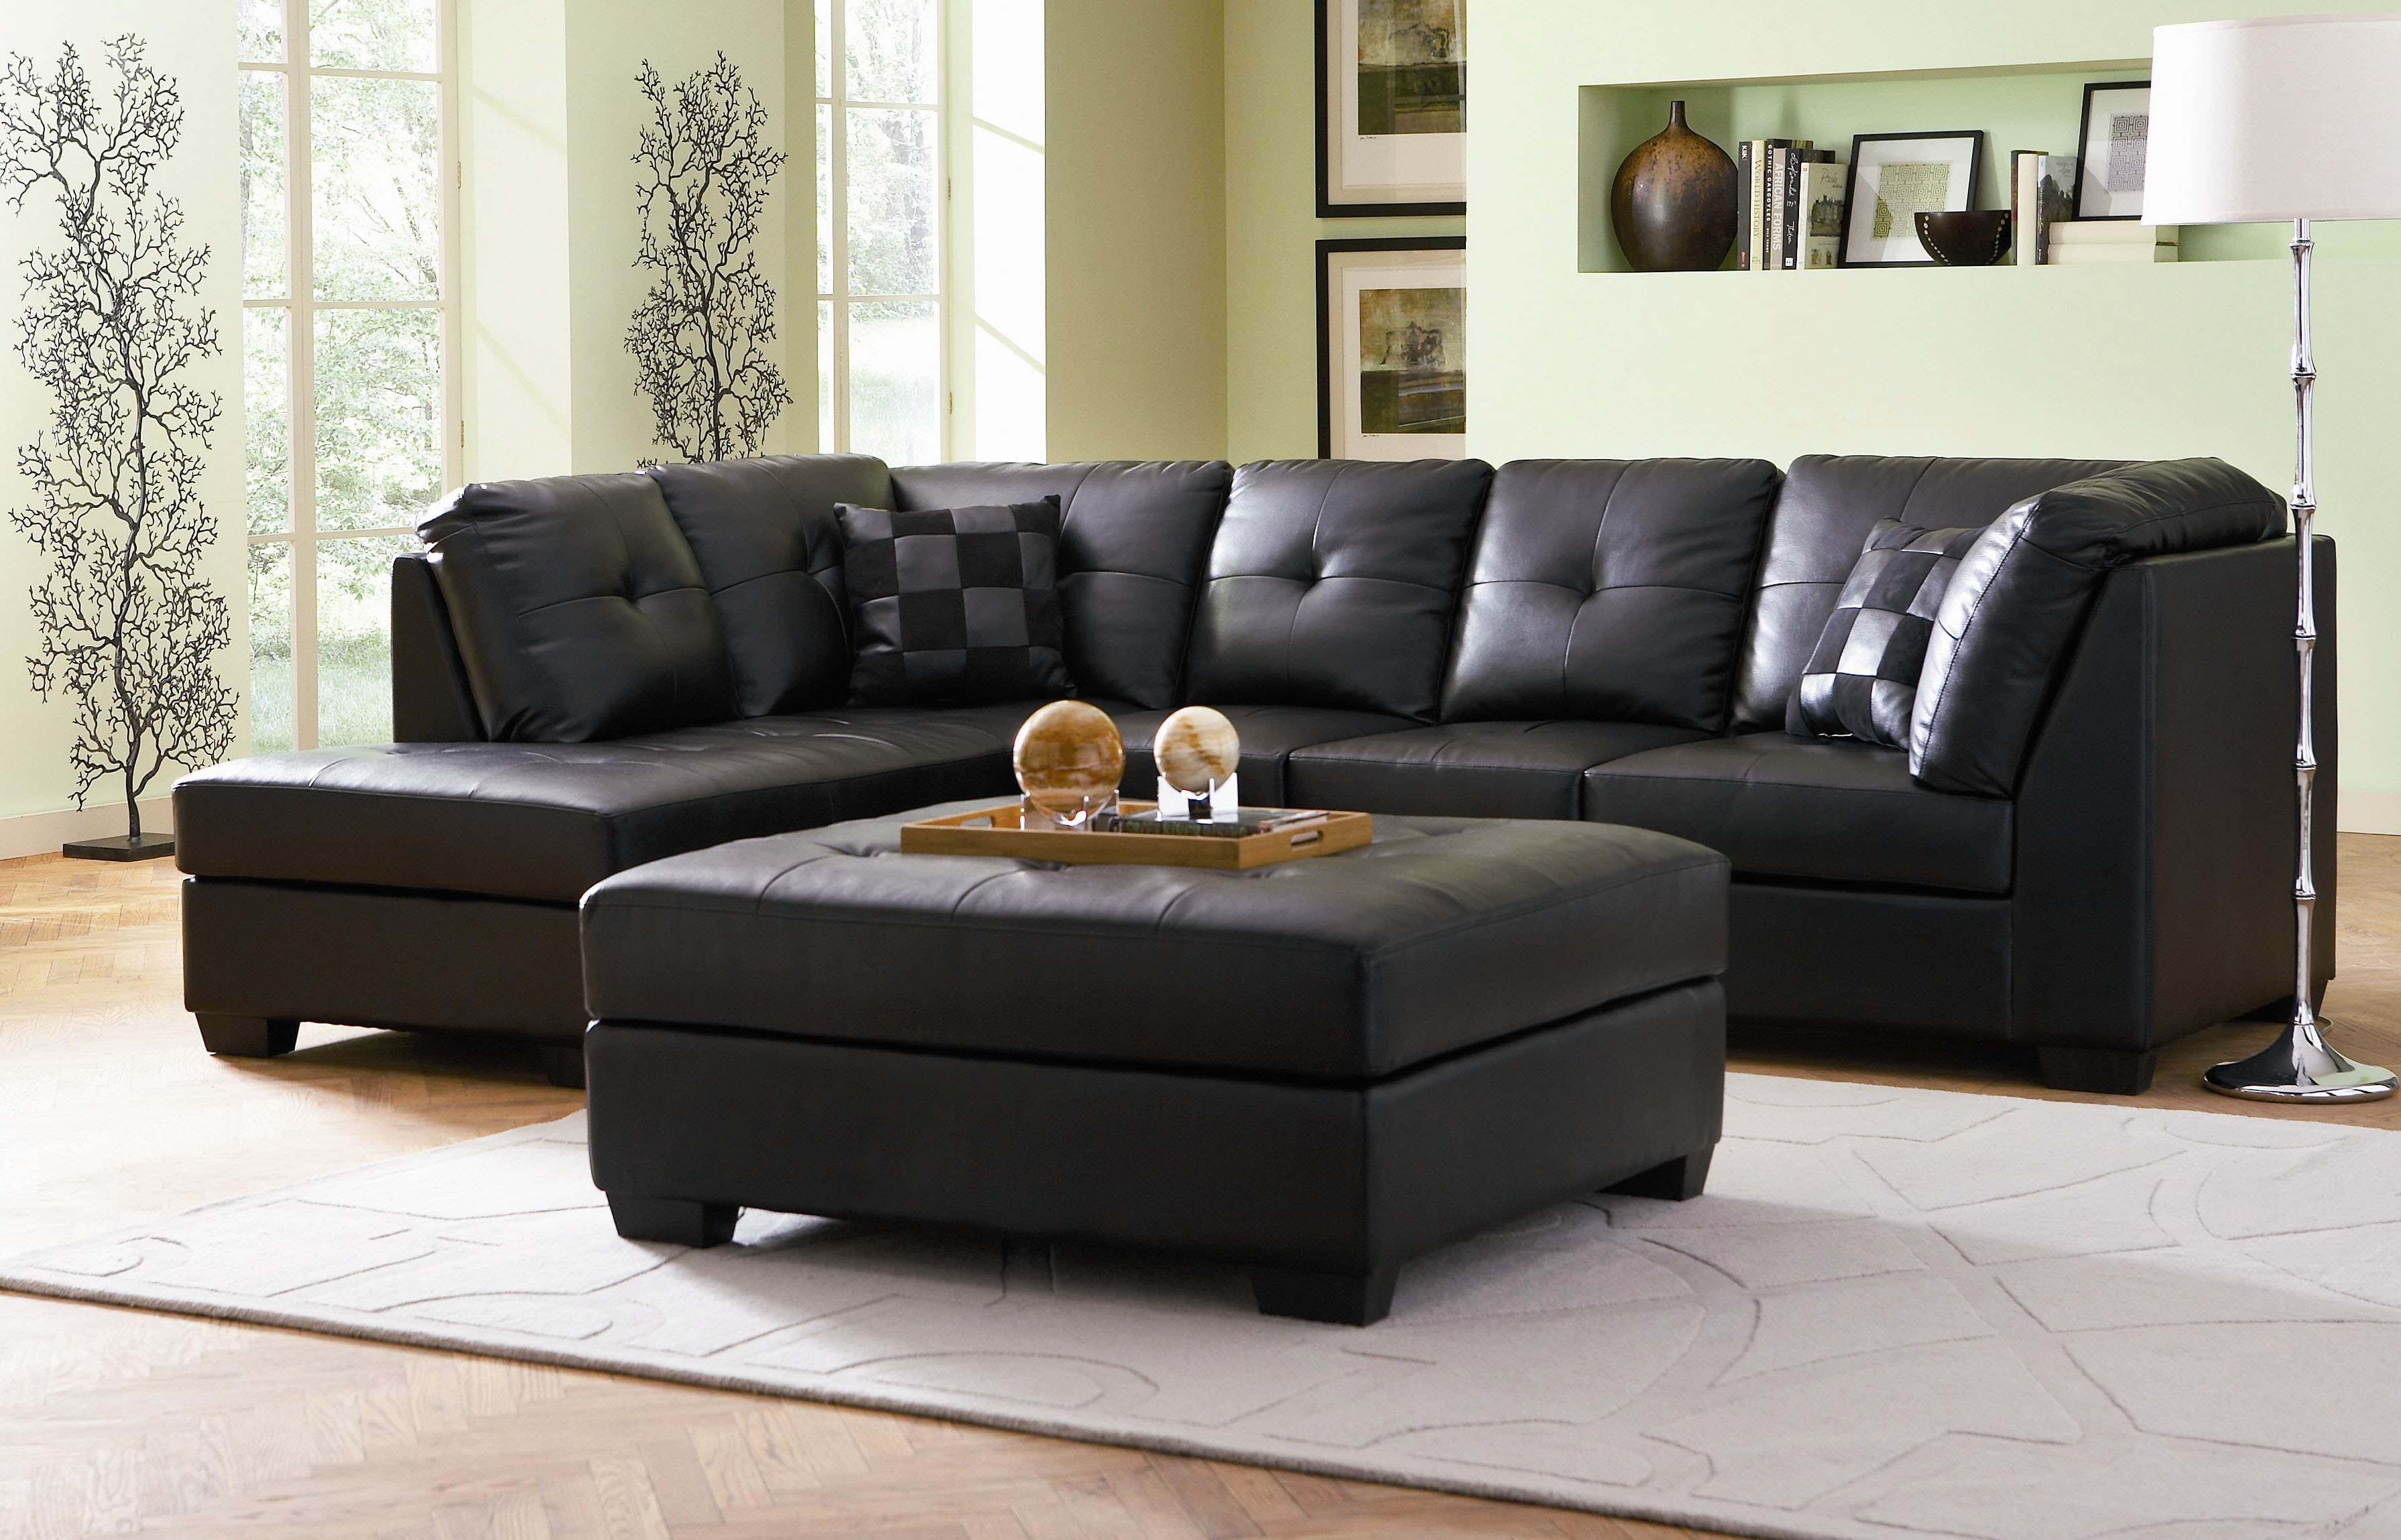 microfiber sectional sofa sectional sleeper sofa cheap sectional couches